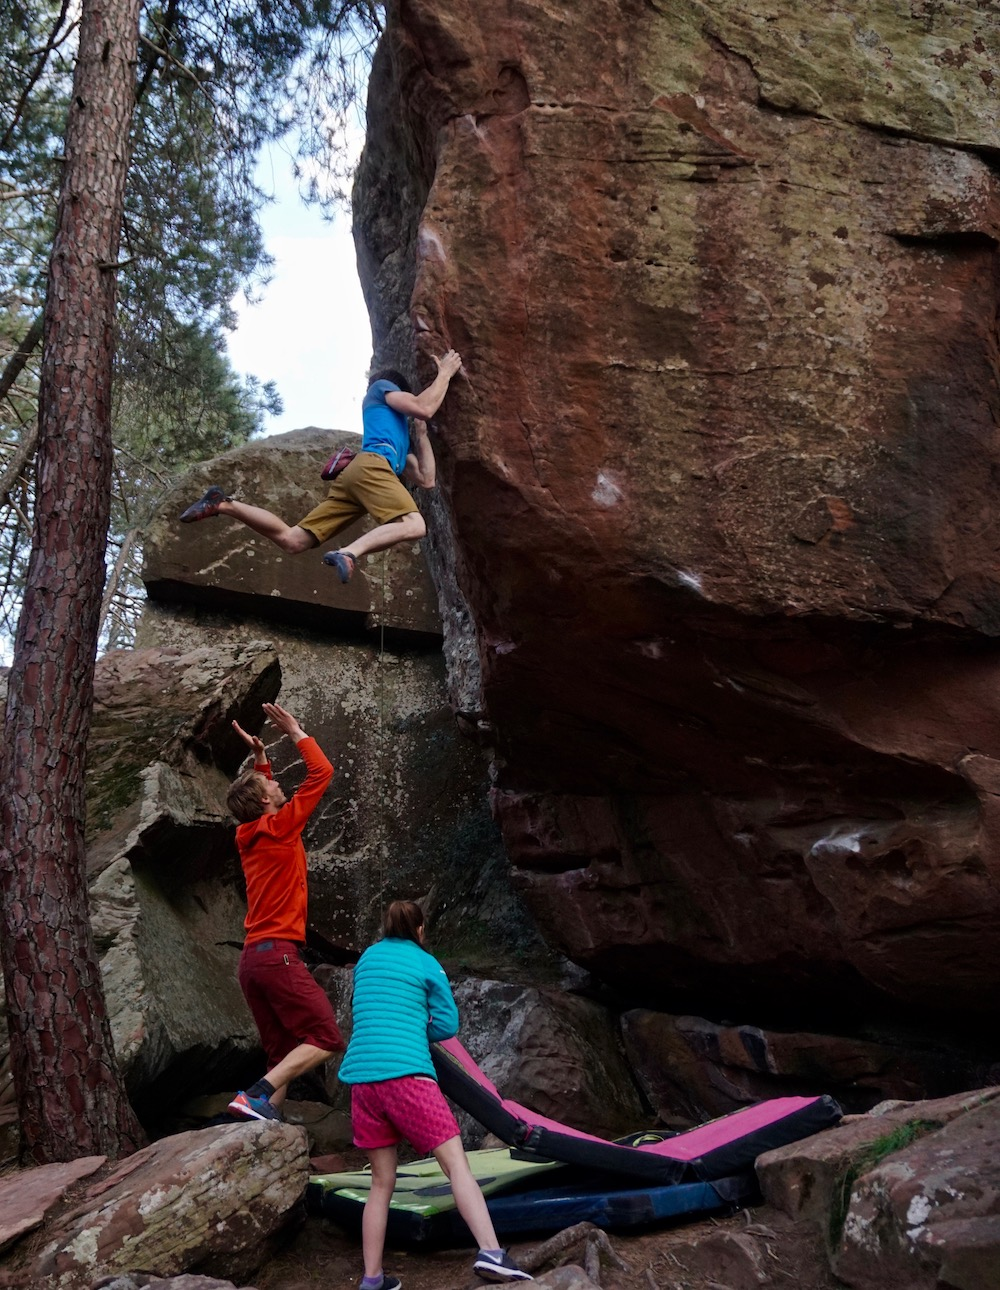 Nils Favre on not so frequently repeated highball  Zartako  (8A+) in Arrastradero. Photo by Hanna Vartia.